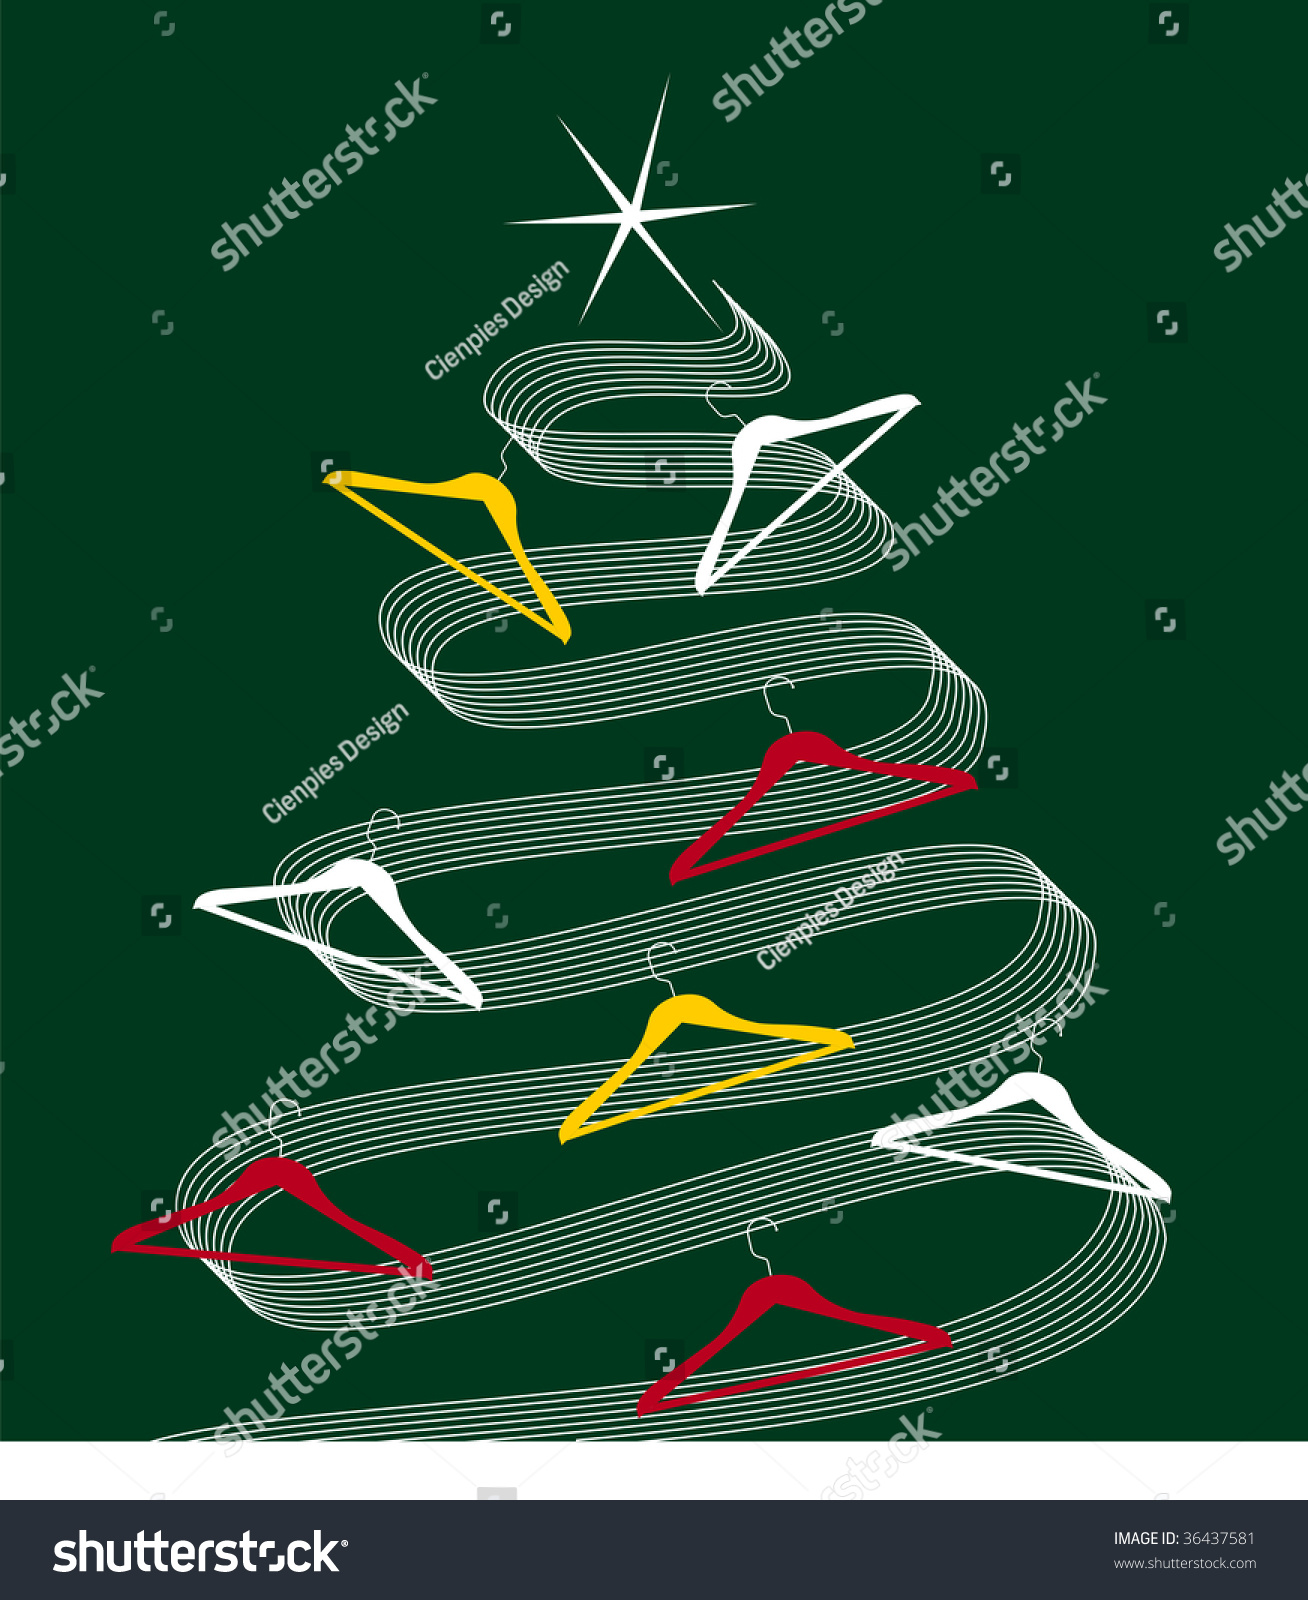 Christmas tree made of white lines decorated with clothes hangers